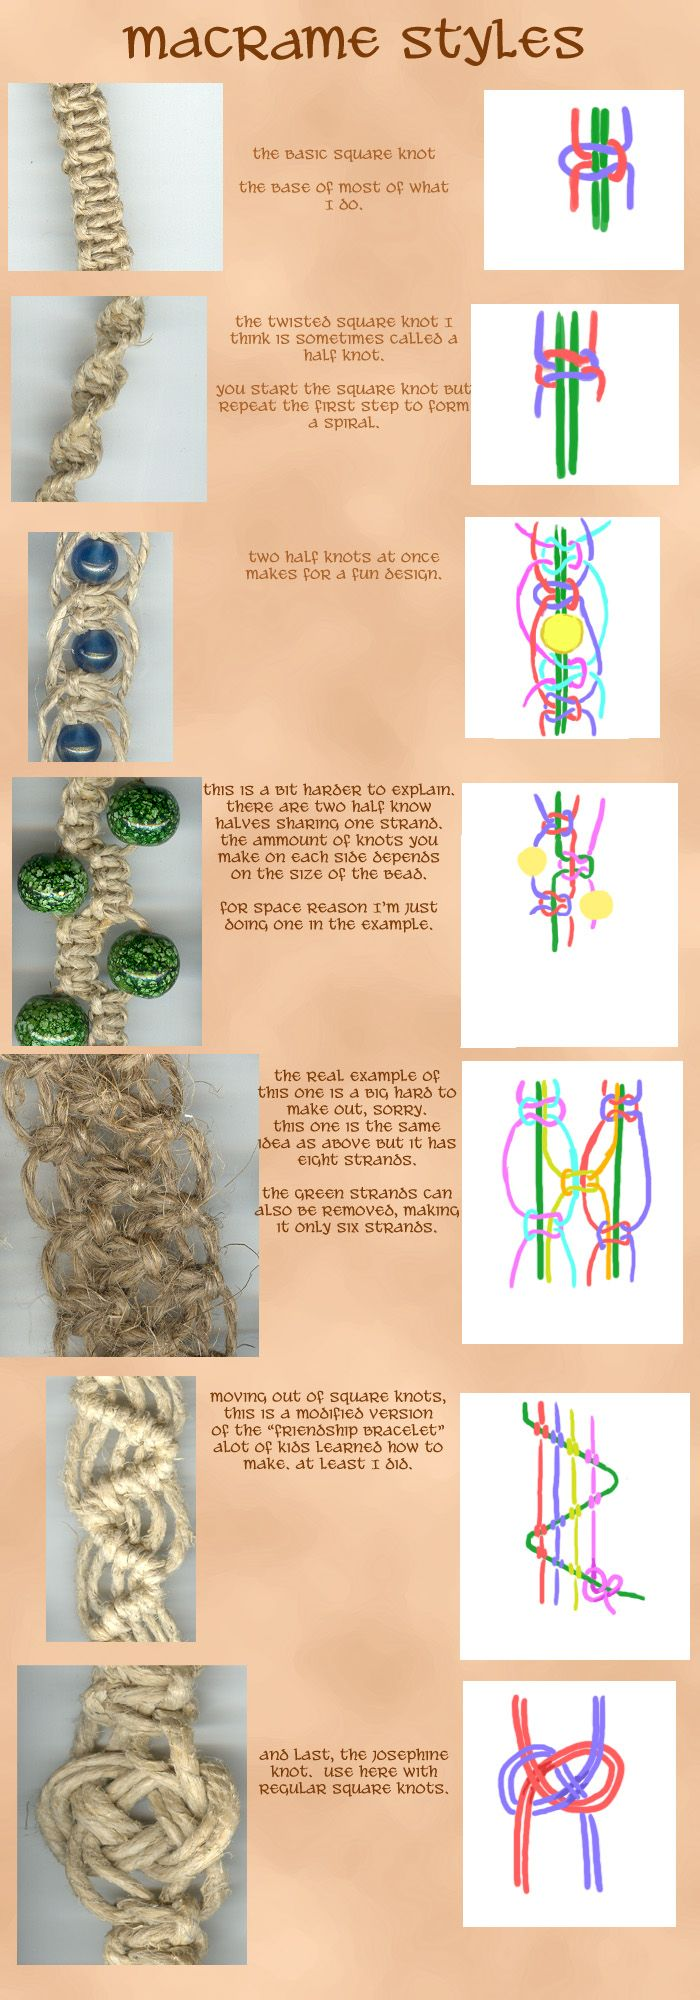 Macrame Styles Have To Make Some Of These Differentones Things Square Knot Diagram